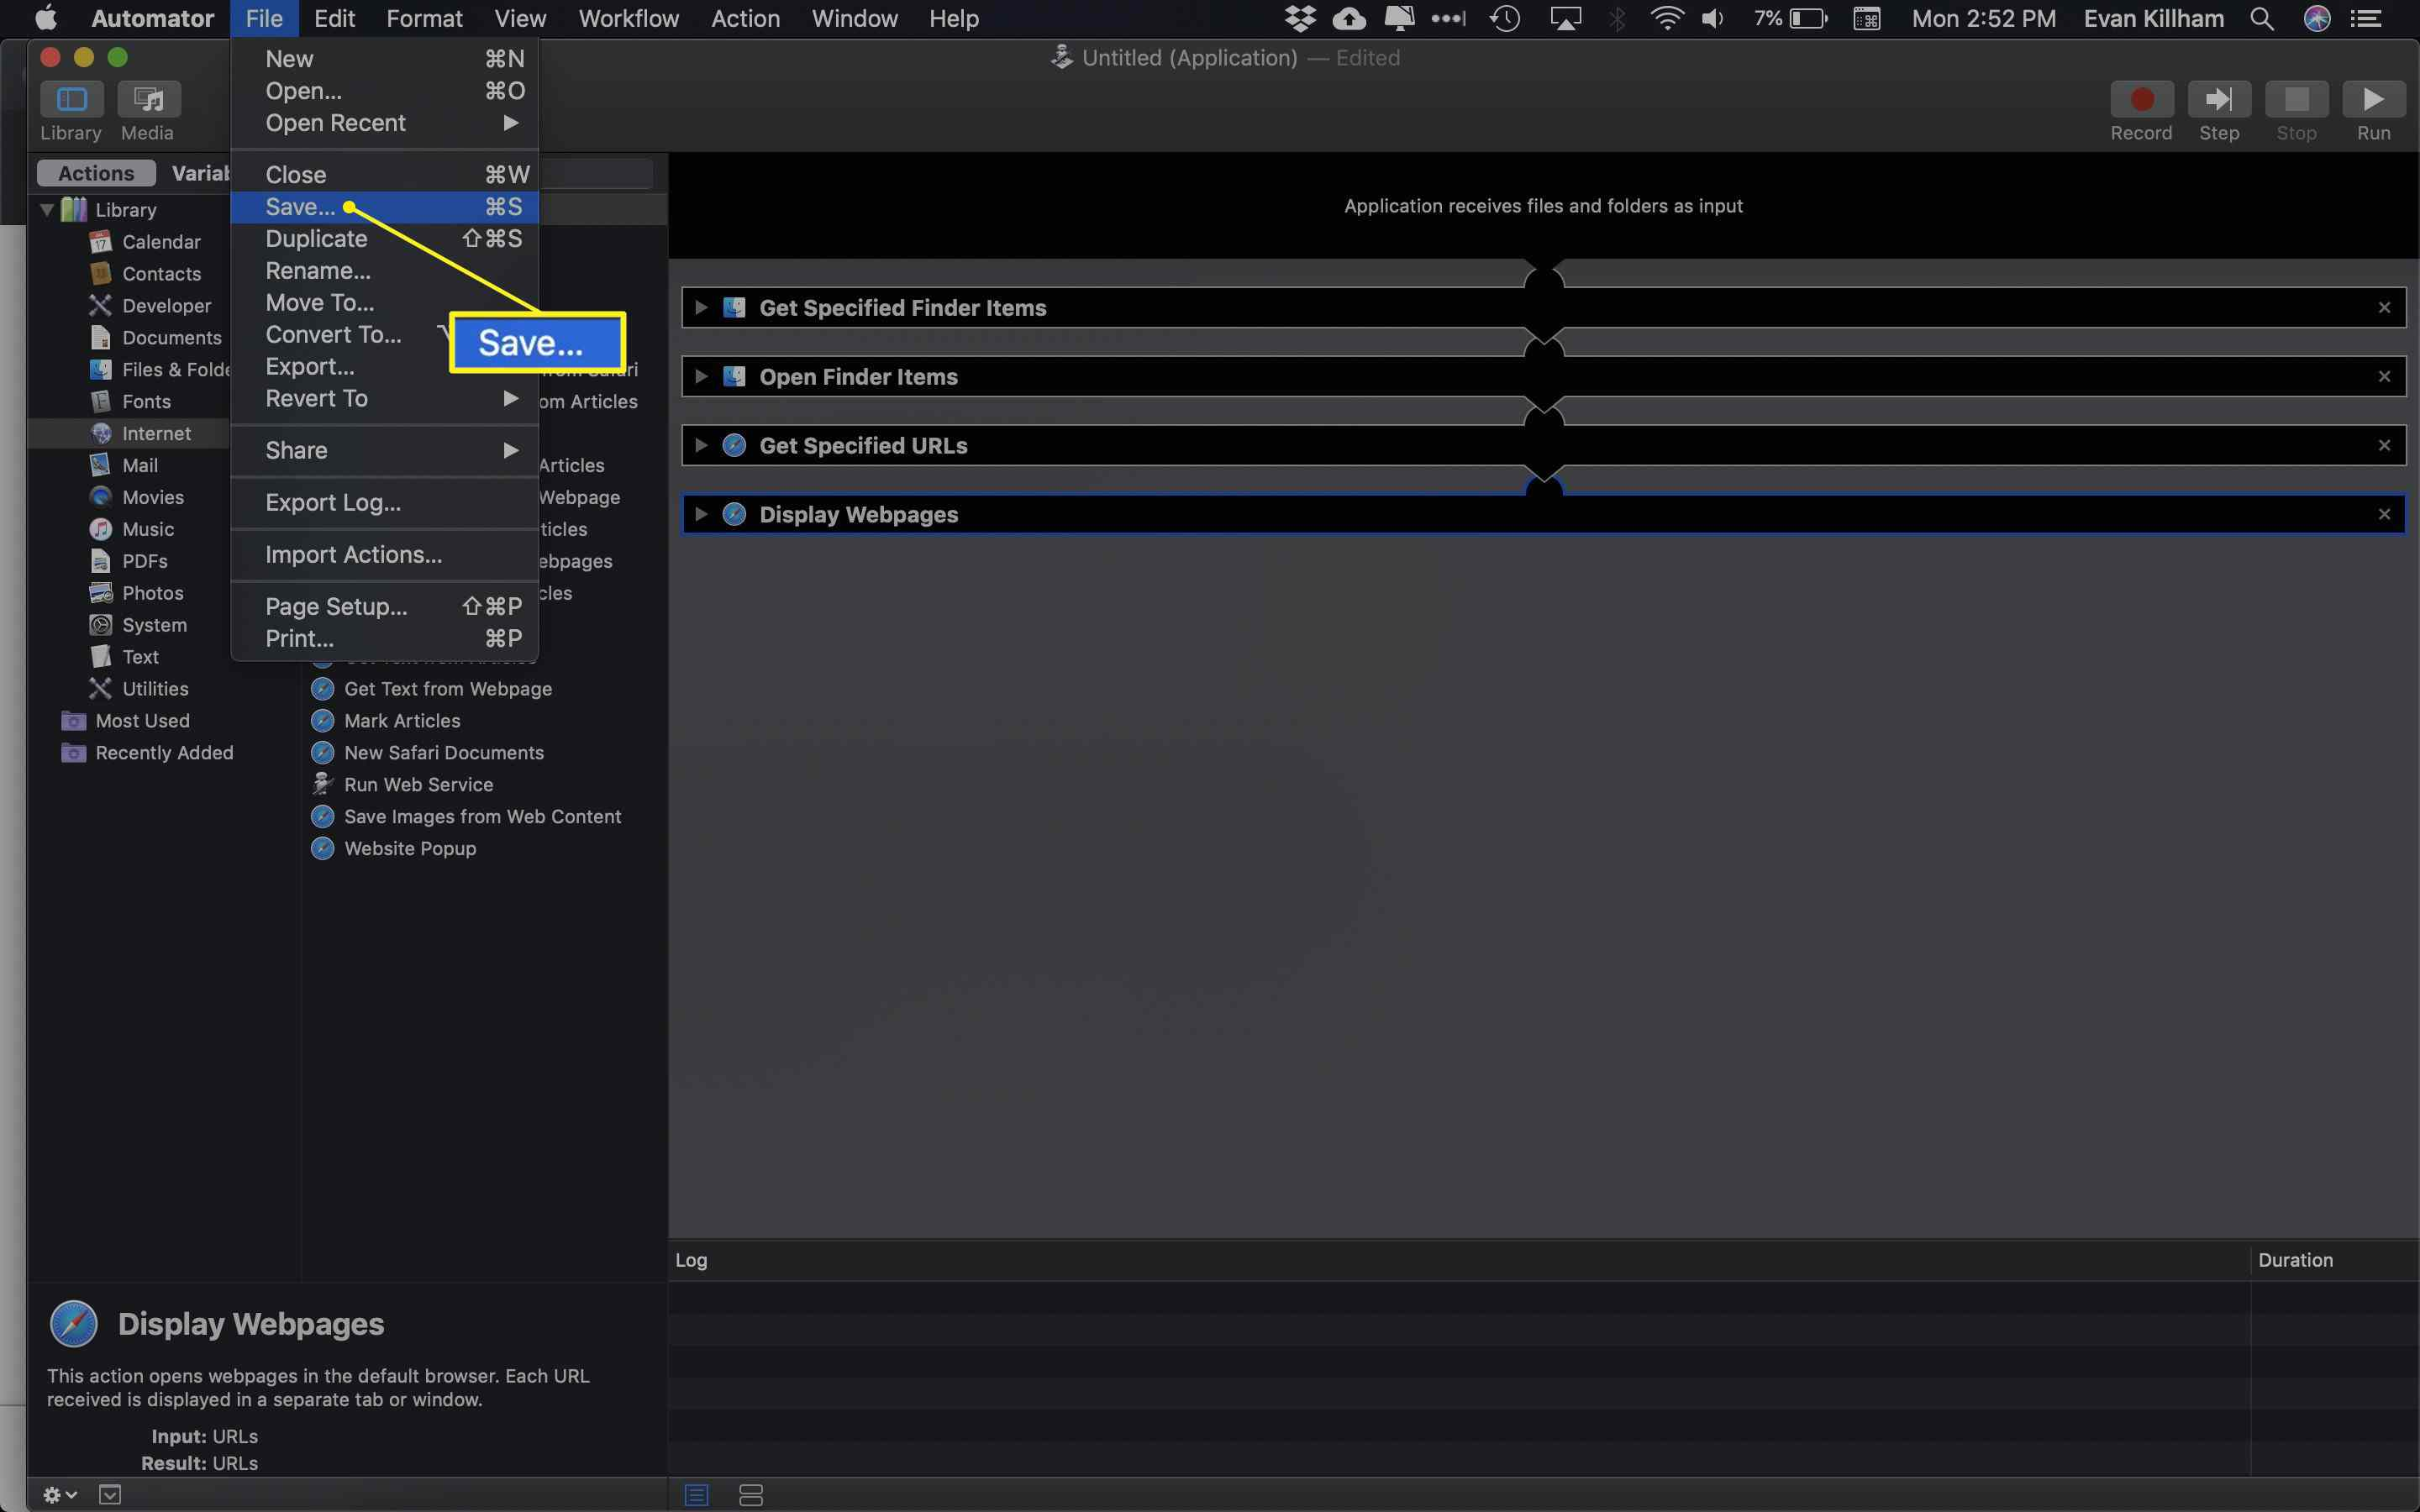 The Automator File menu with Save selected